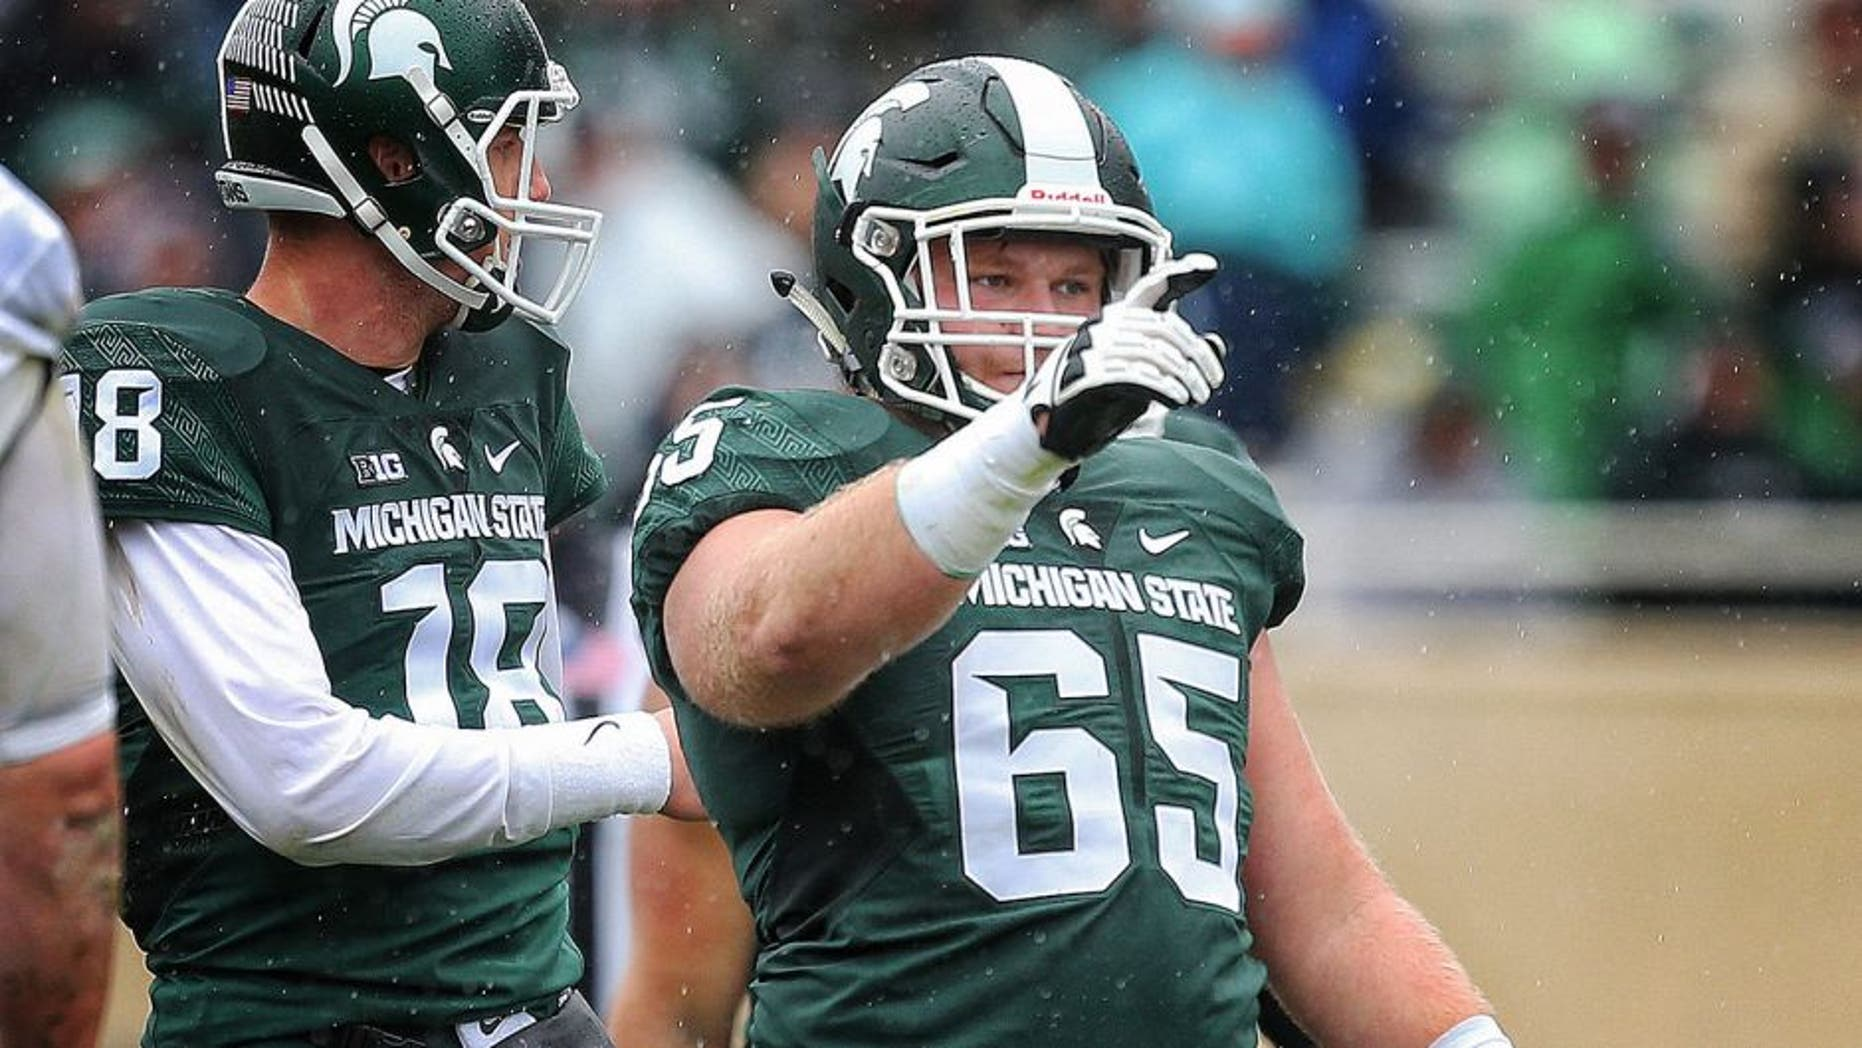 Oct 3, 2015; East Lansing, MI, USA; Michigan State Spartans offensive lineman Brian Allen (65) points out coverage before the snap of the ball during the 2nd half of a game at Spartan Stadium. MSU won 24-21. Mandatory Credit: Mike Carter-USA TODAY Sports